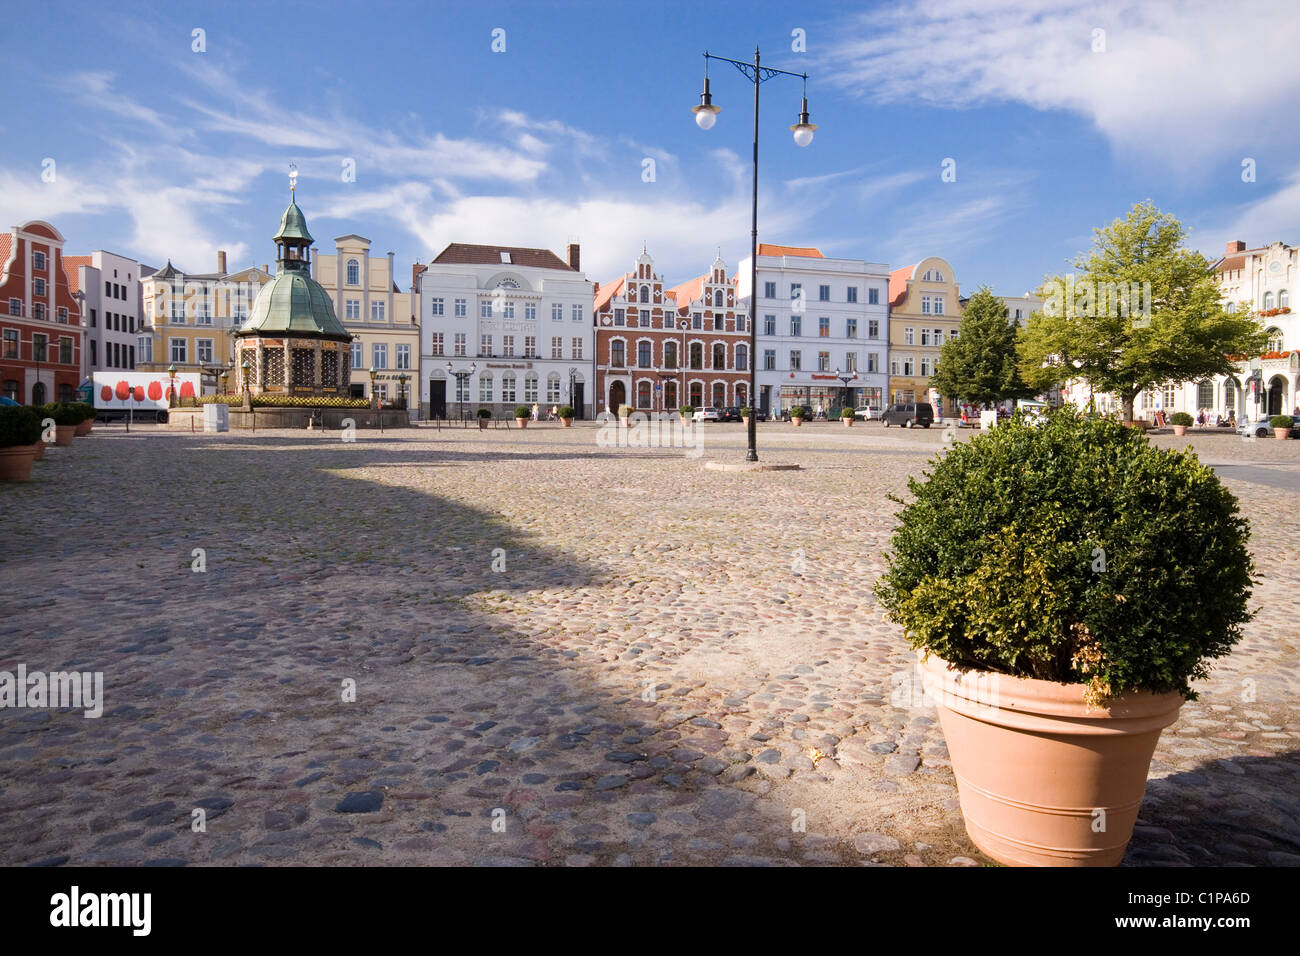 Germany, Wismar, market square with pot plant in foreground - Stock Image